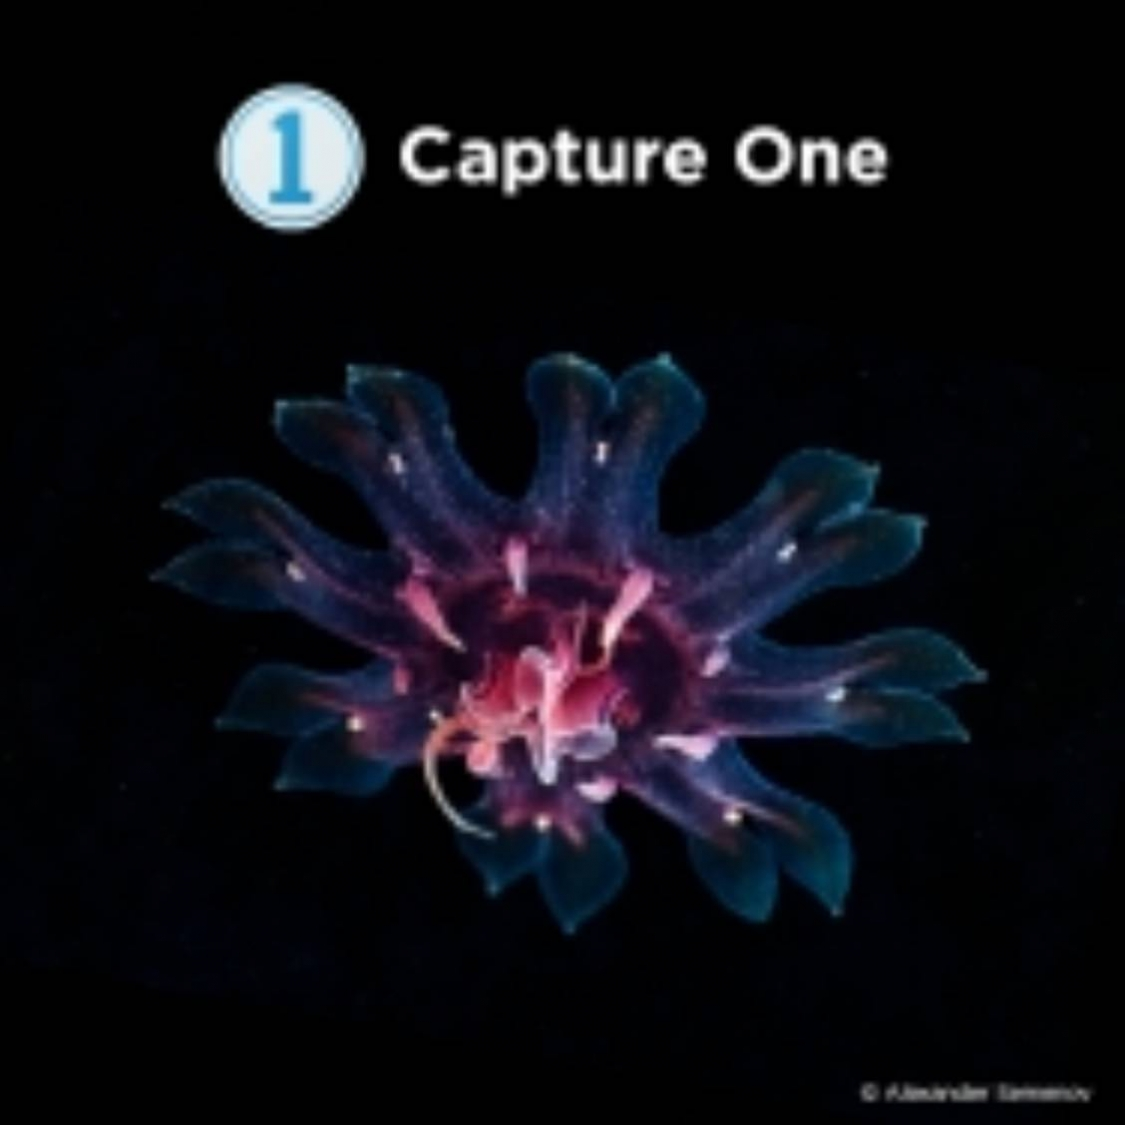 Capture One Pro 20 (Nikon)